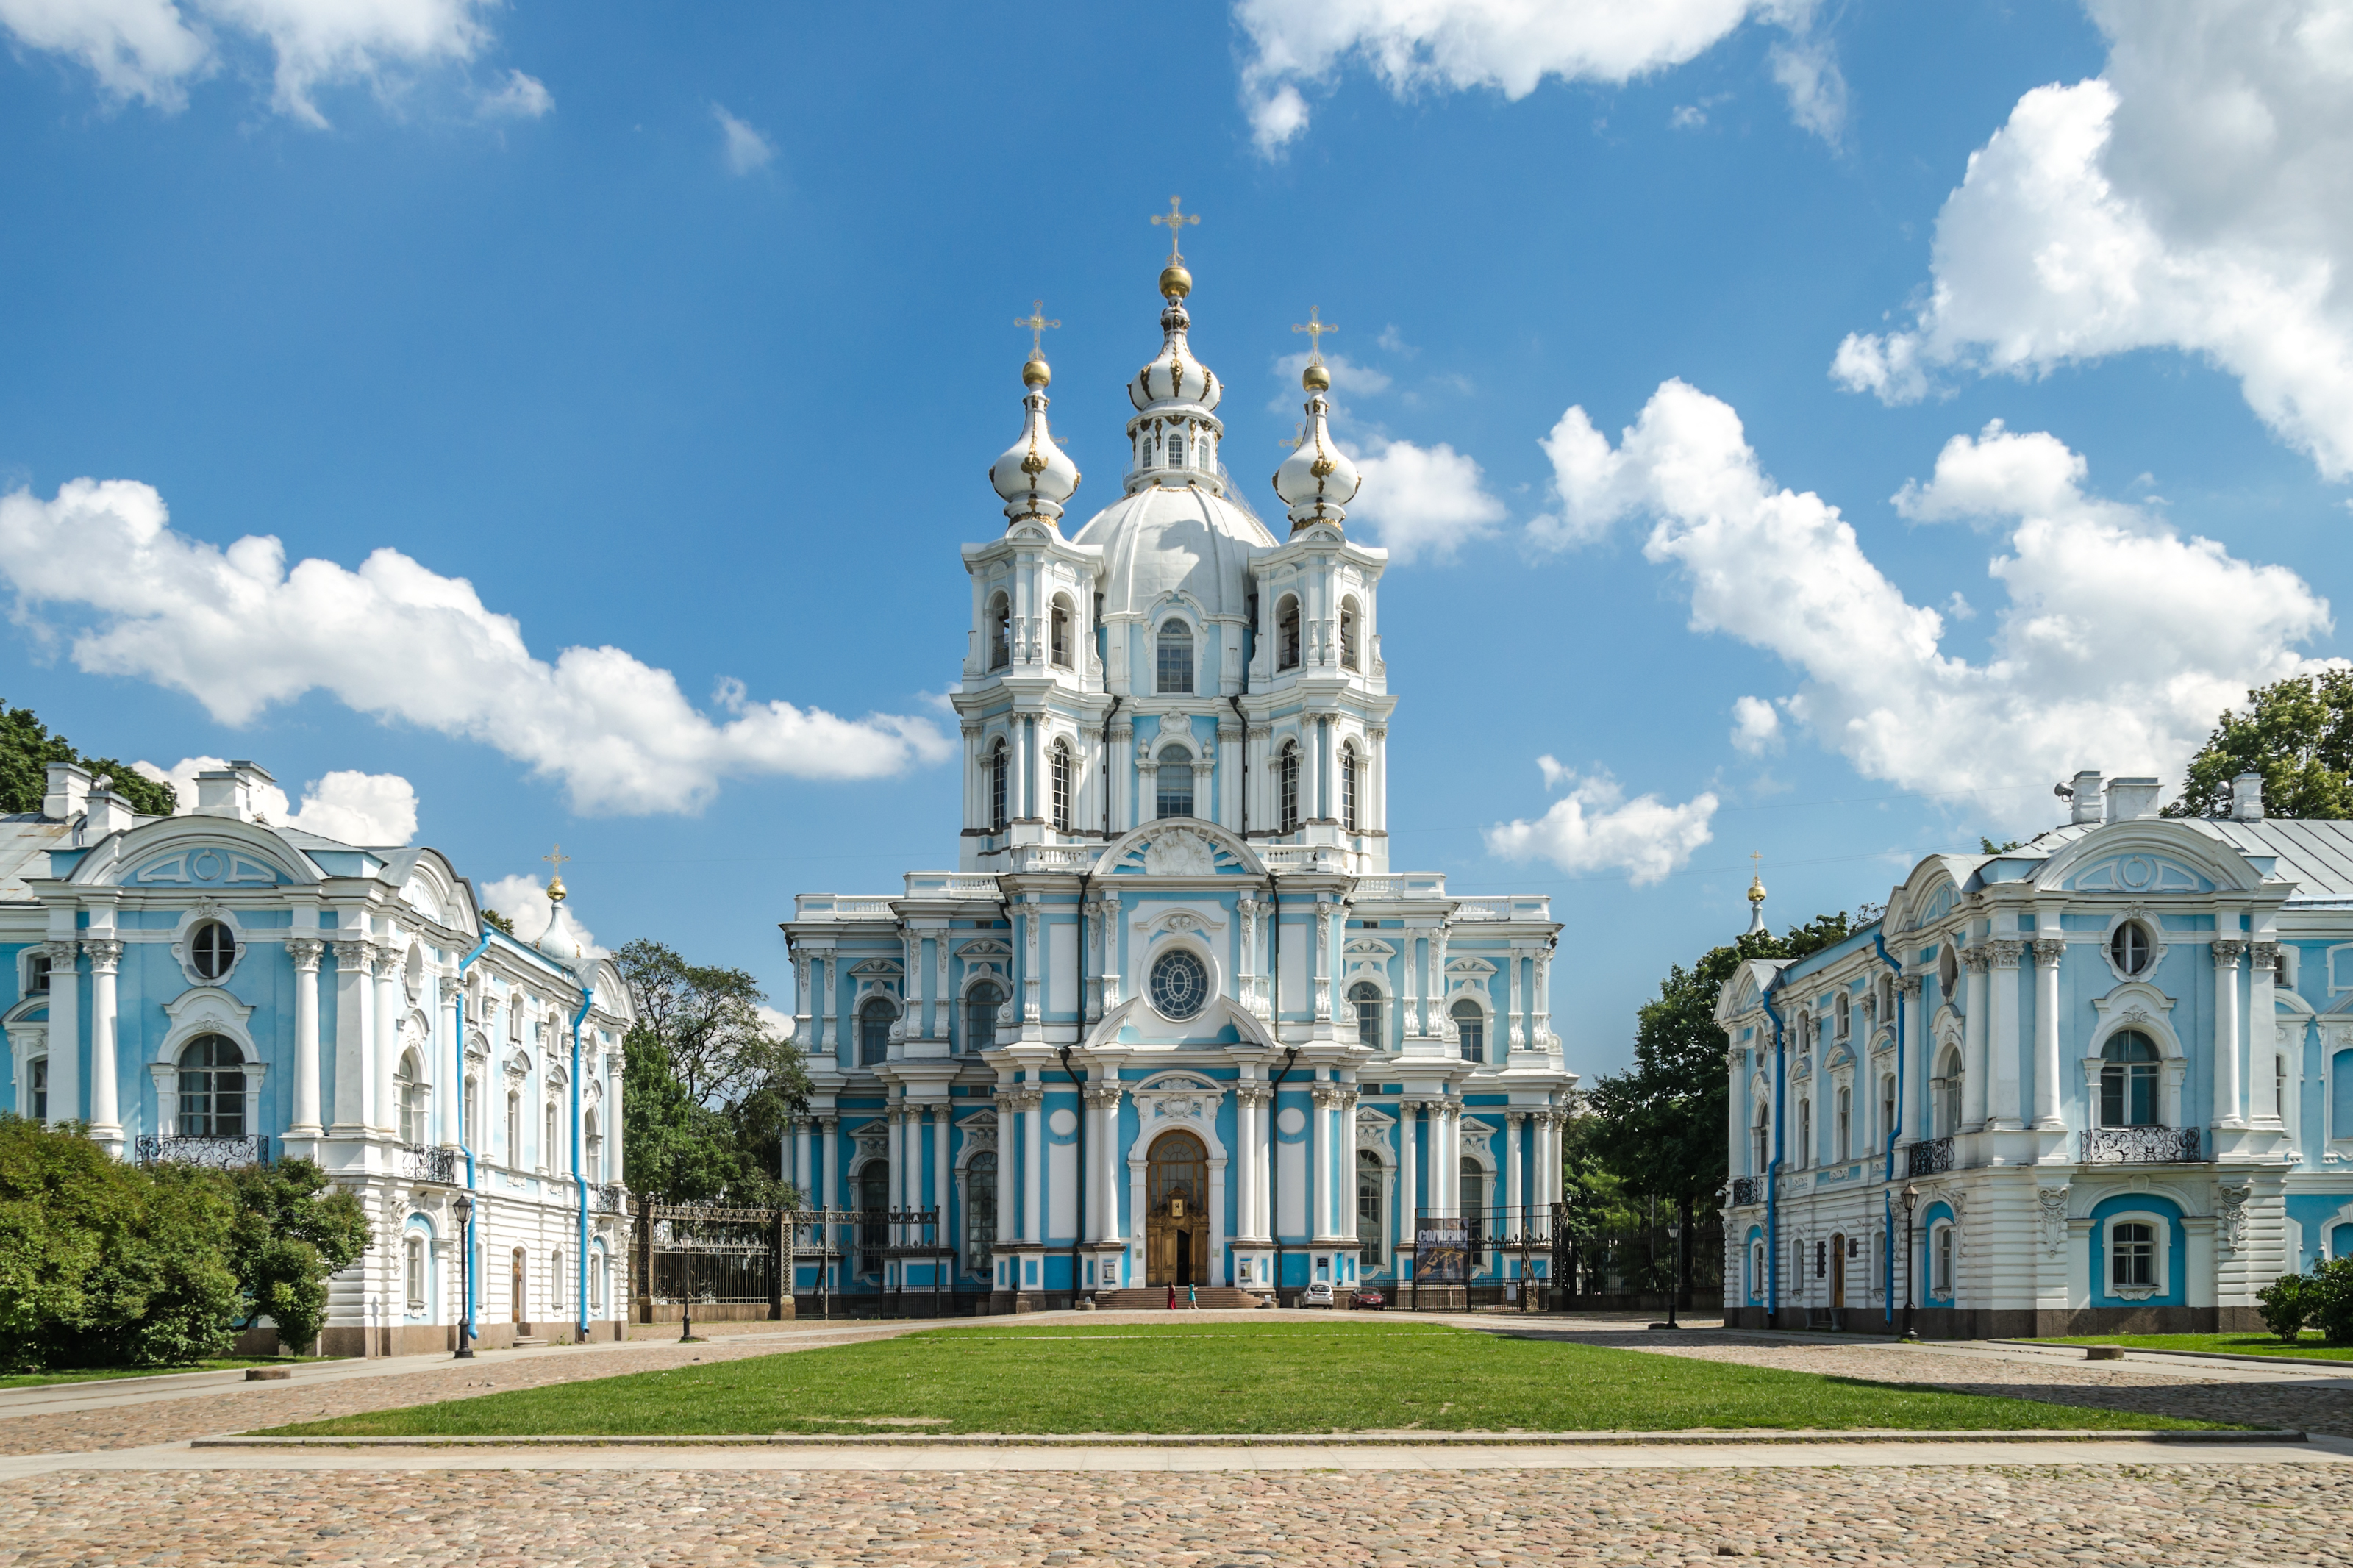 File:Smolny Cathedral SPB 02.jpg - Wikimedia Commons